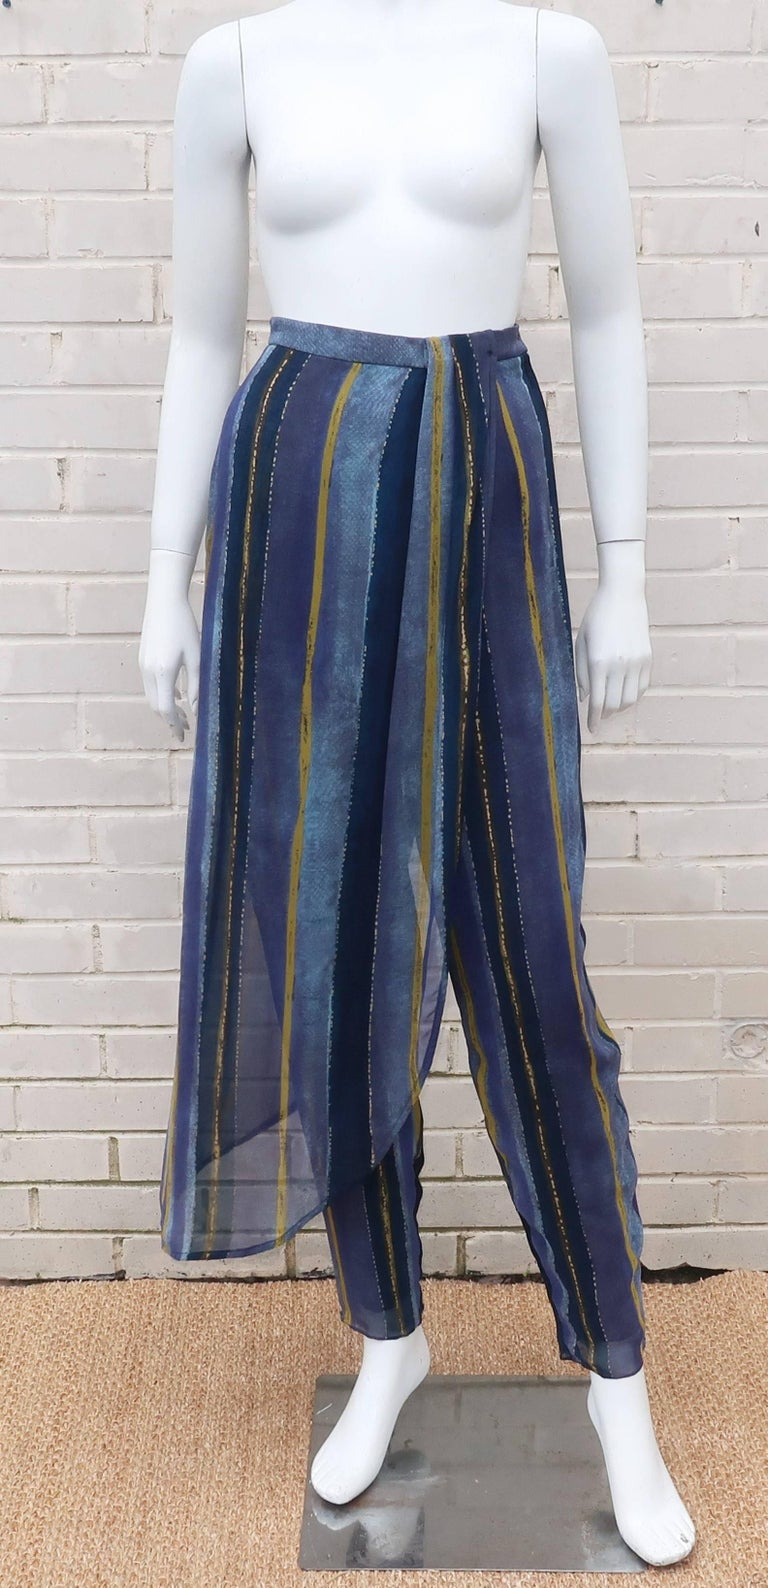 This Giorgio Armani pant design is teeming with exotic inspiration and a sensual silhouette.  The fully lined silk pants button and zip at the side with hidden pockets, a sarong style waistband and a tapered leg.  The abstract striped print in